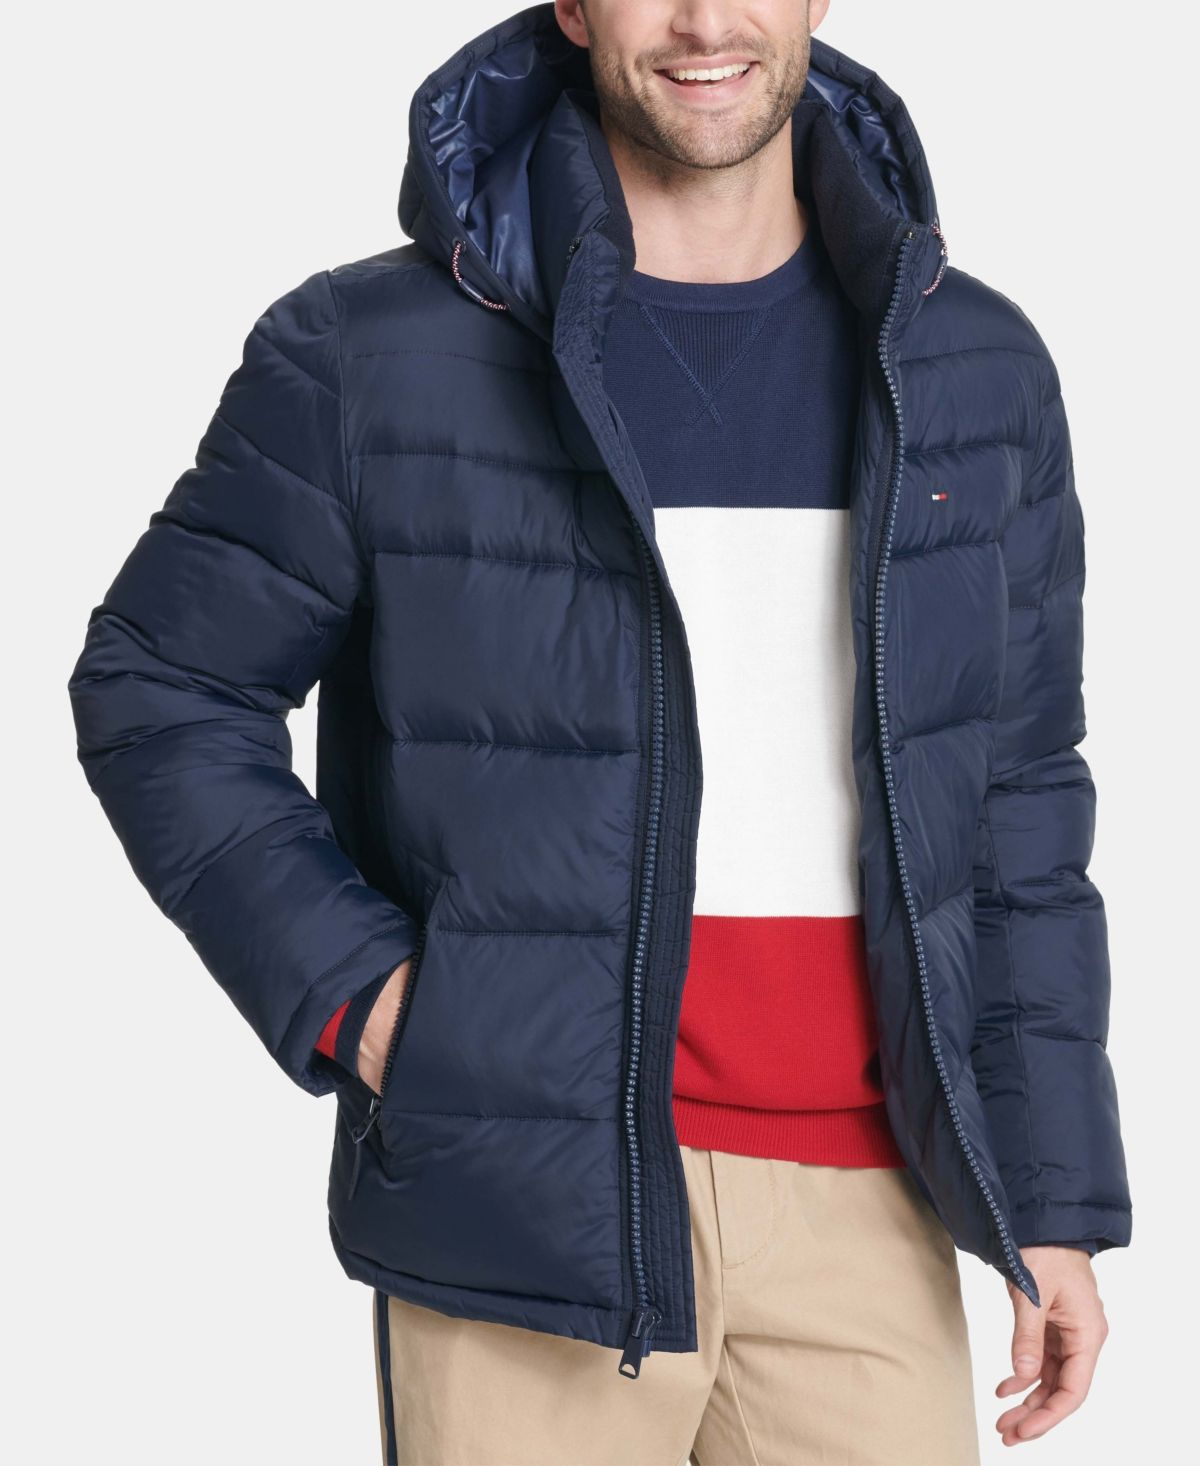 Tommy Hilfiger Men S Quilted Puffer Jacket Created For Macy S Reviews Coats Jackets Men Macy S In 2021 Tommy Hilfiger Jacket Men Tommy Hilfiger Jackets Quilted Puffer Jacket [ 1466 x 1200 Pixel ]